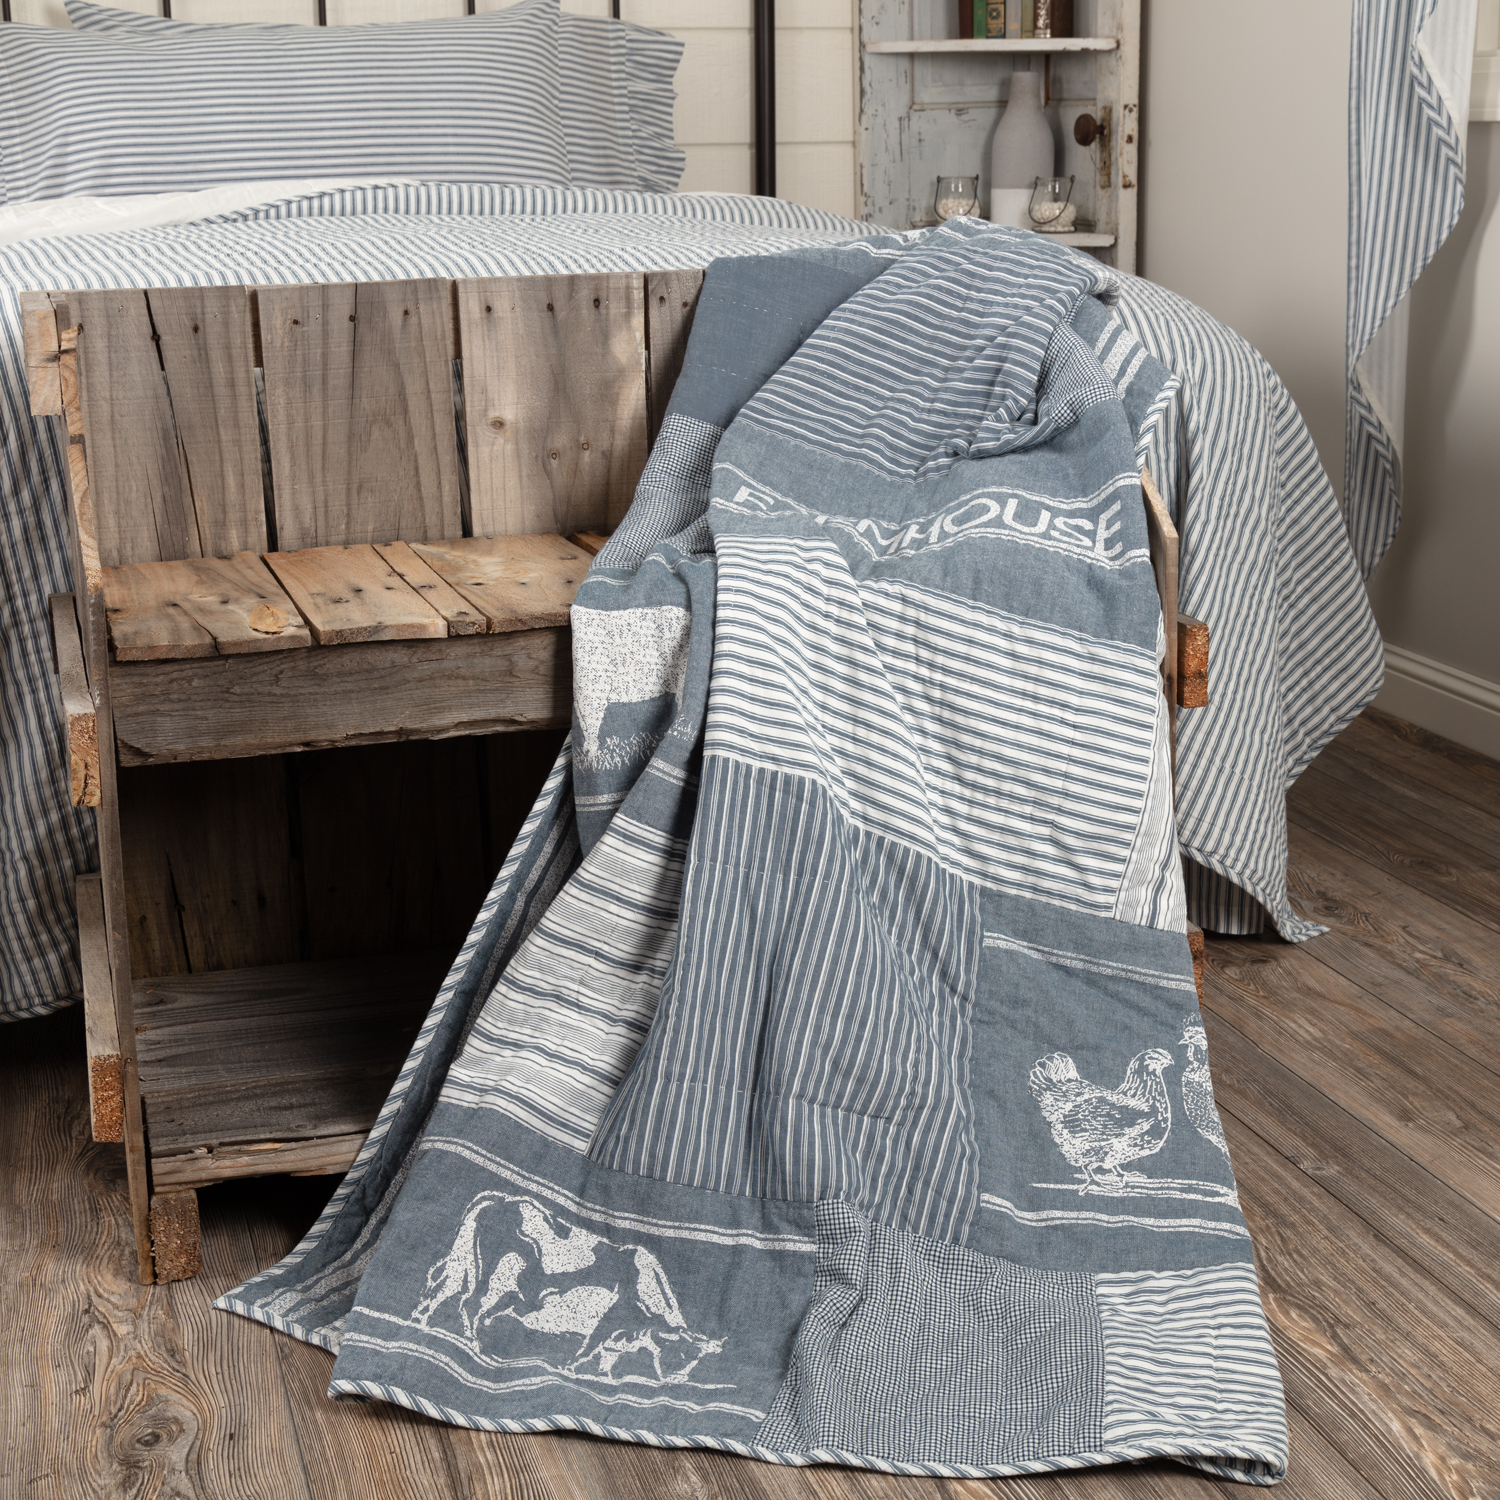 Sawyer Mill Blue Farm Animal Quilted Throw 60x50